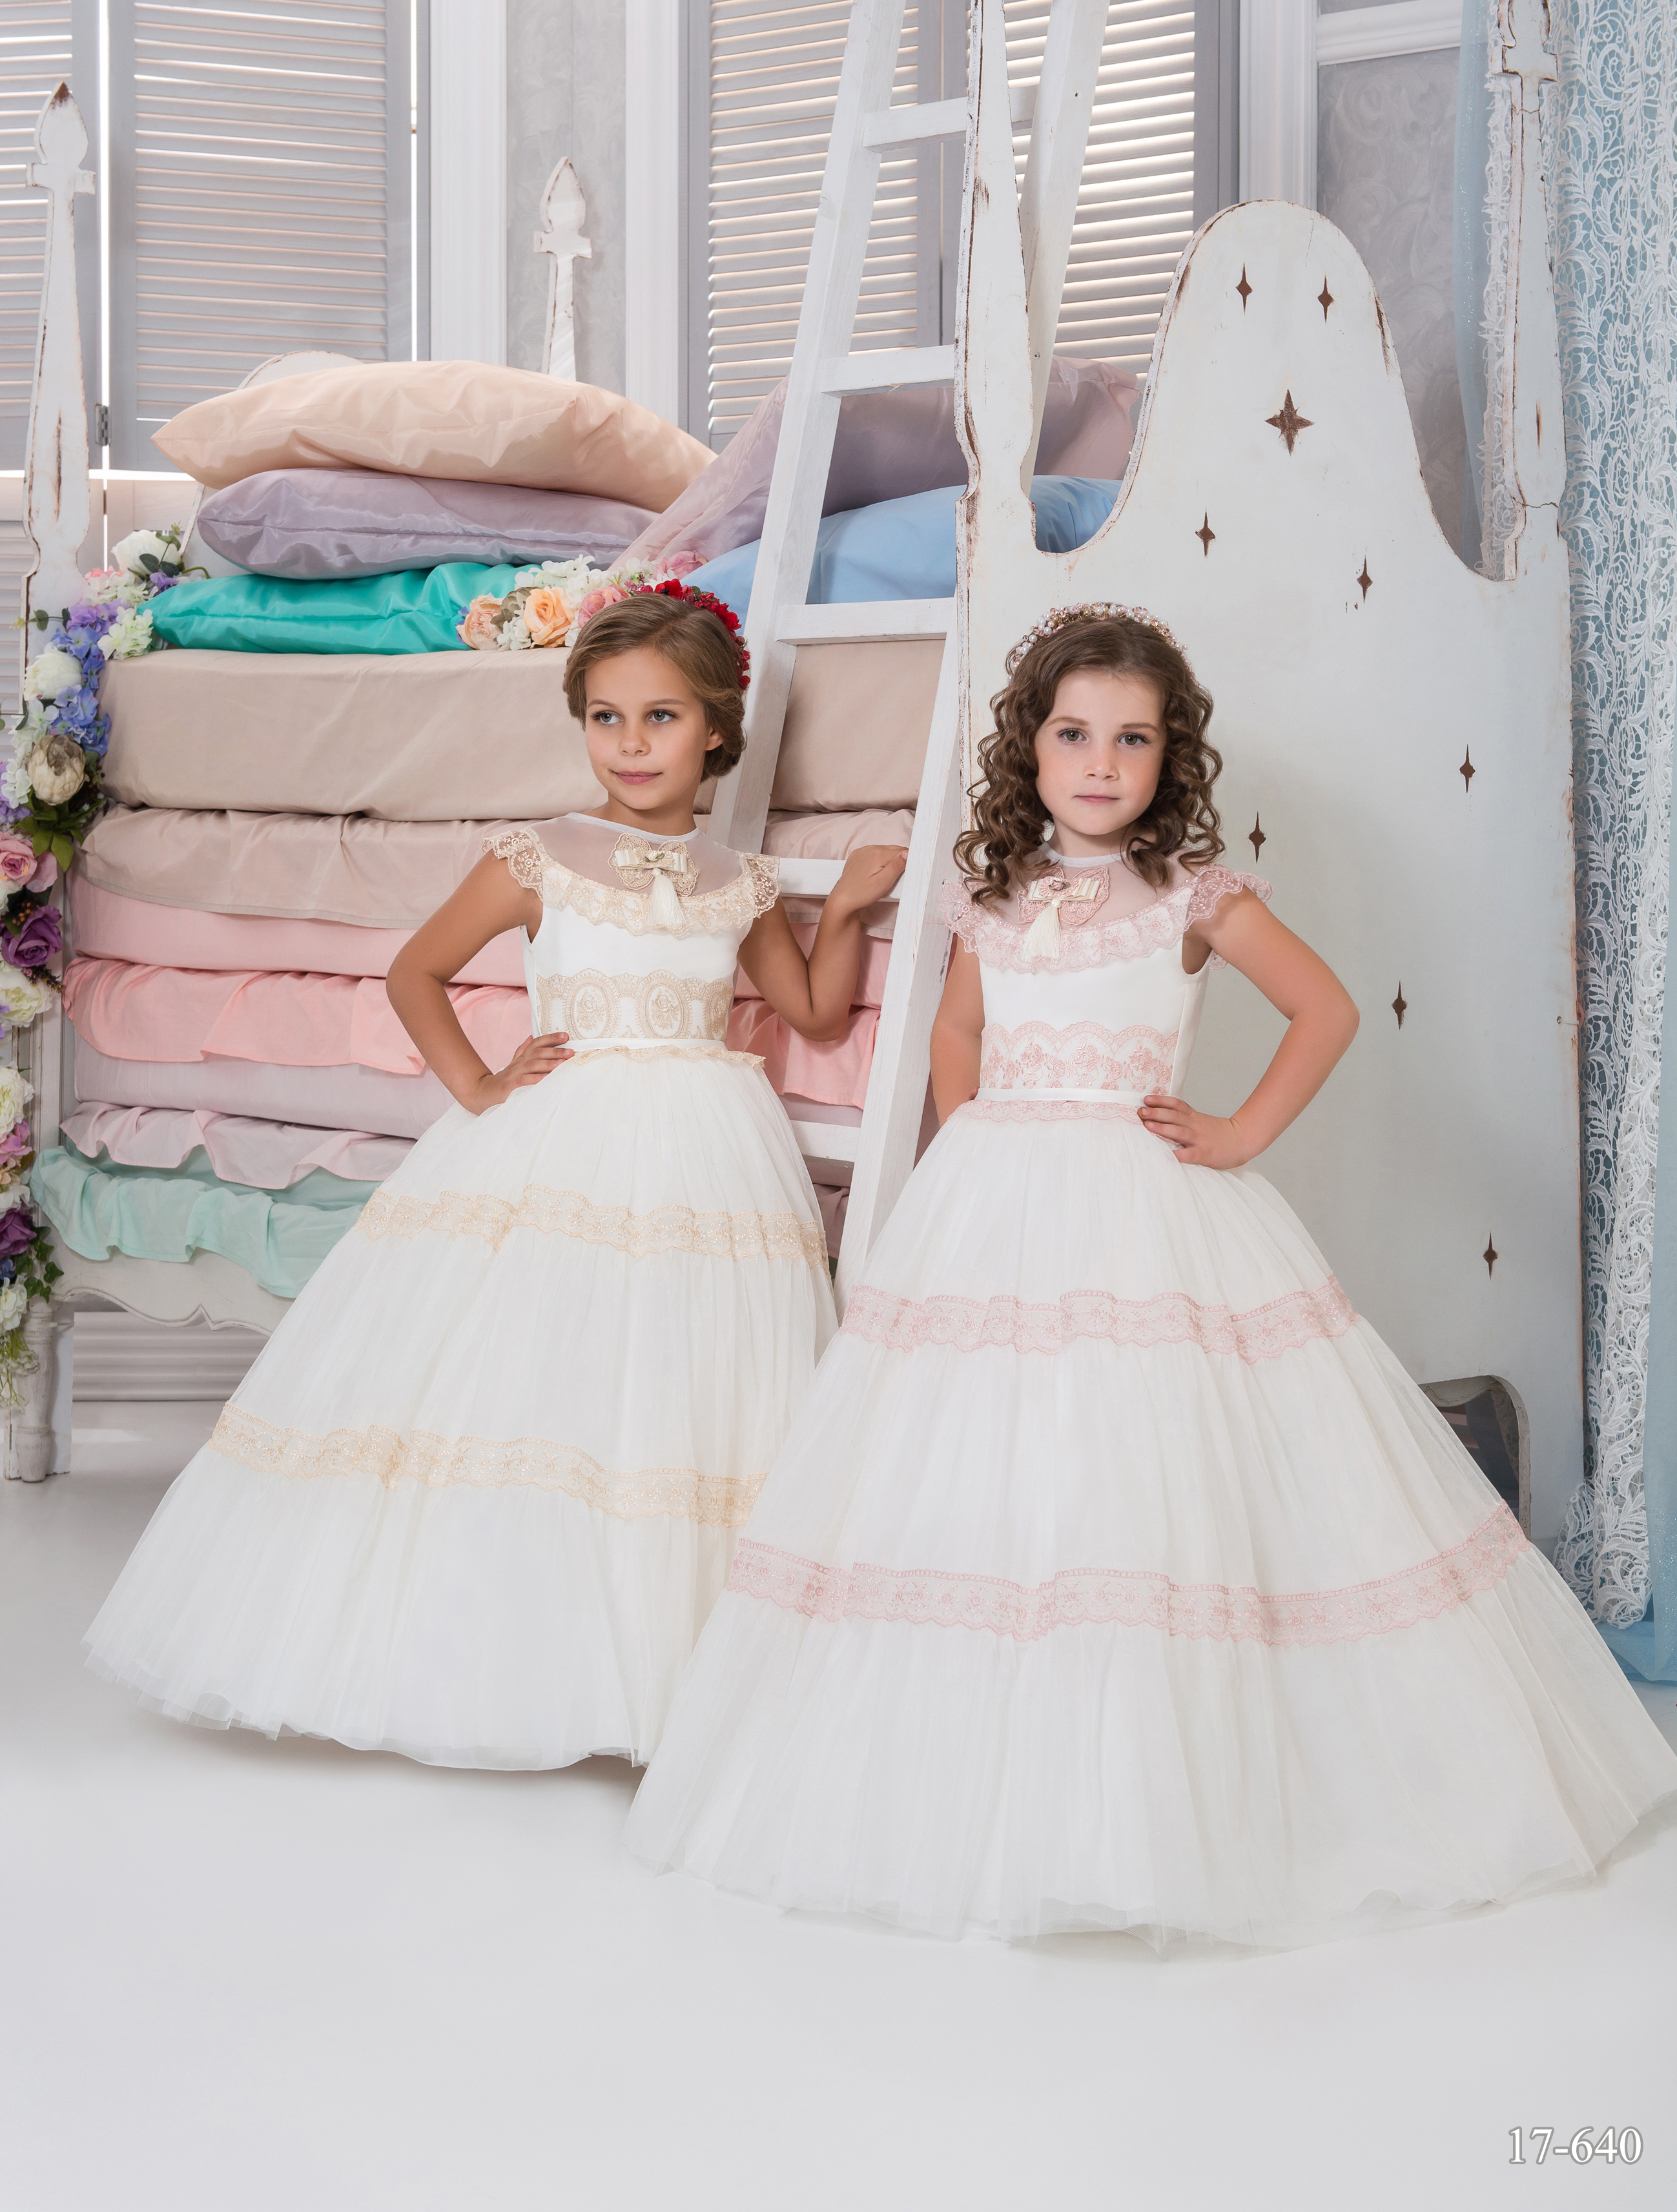 56b7addd9 Children dresses 2018; Children dresses 2017